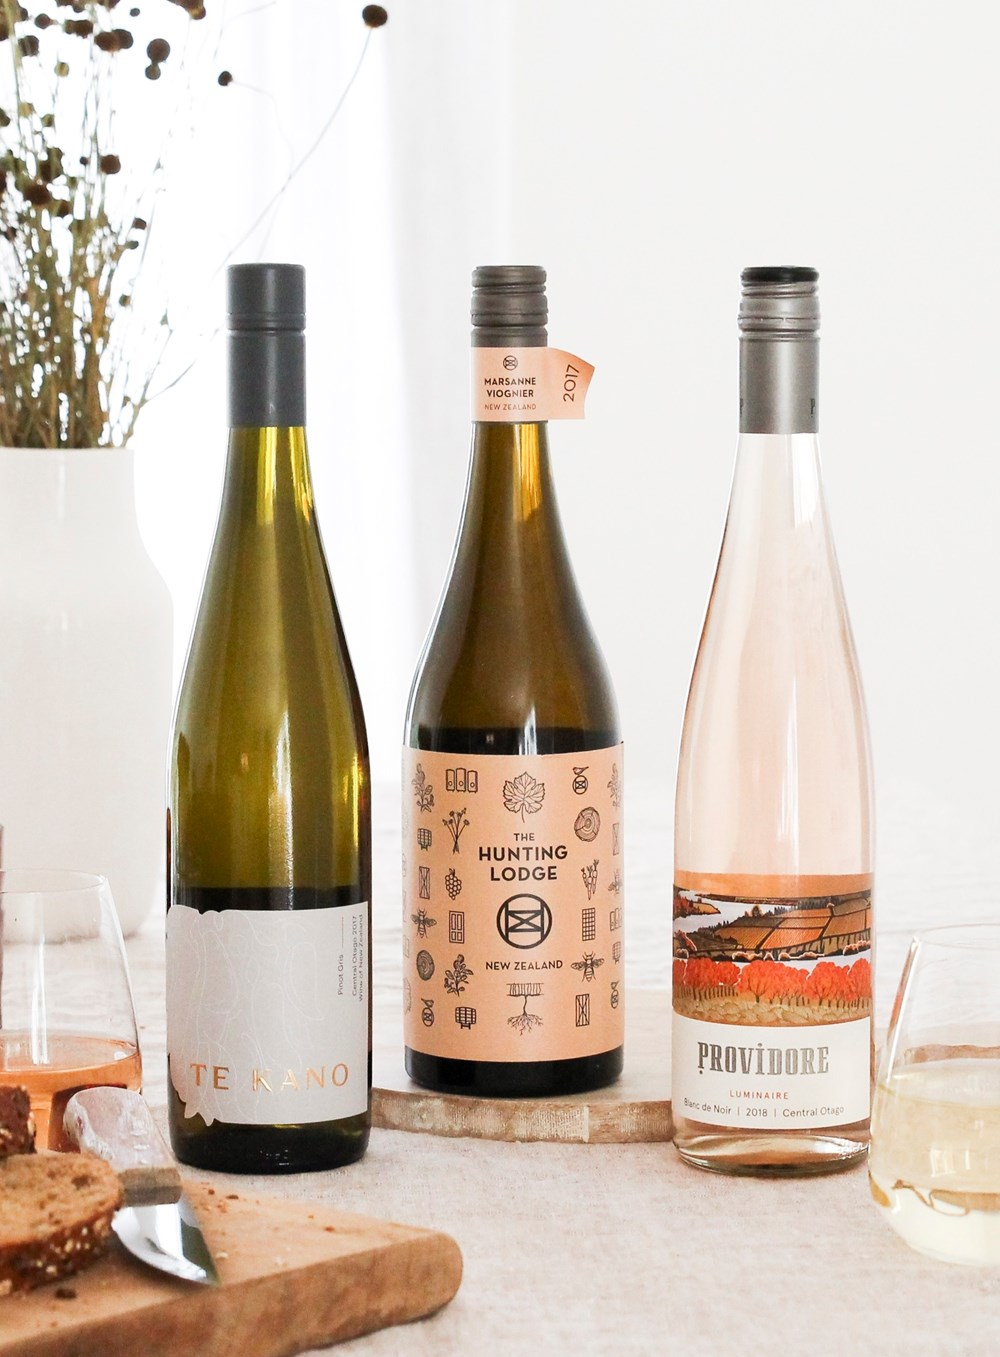 The Te Kano Pinot Gris, The Hunting Lodge Marsanne Viogner and Providore Luminaire Blanc de Noir